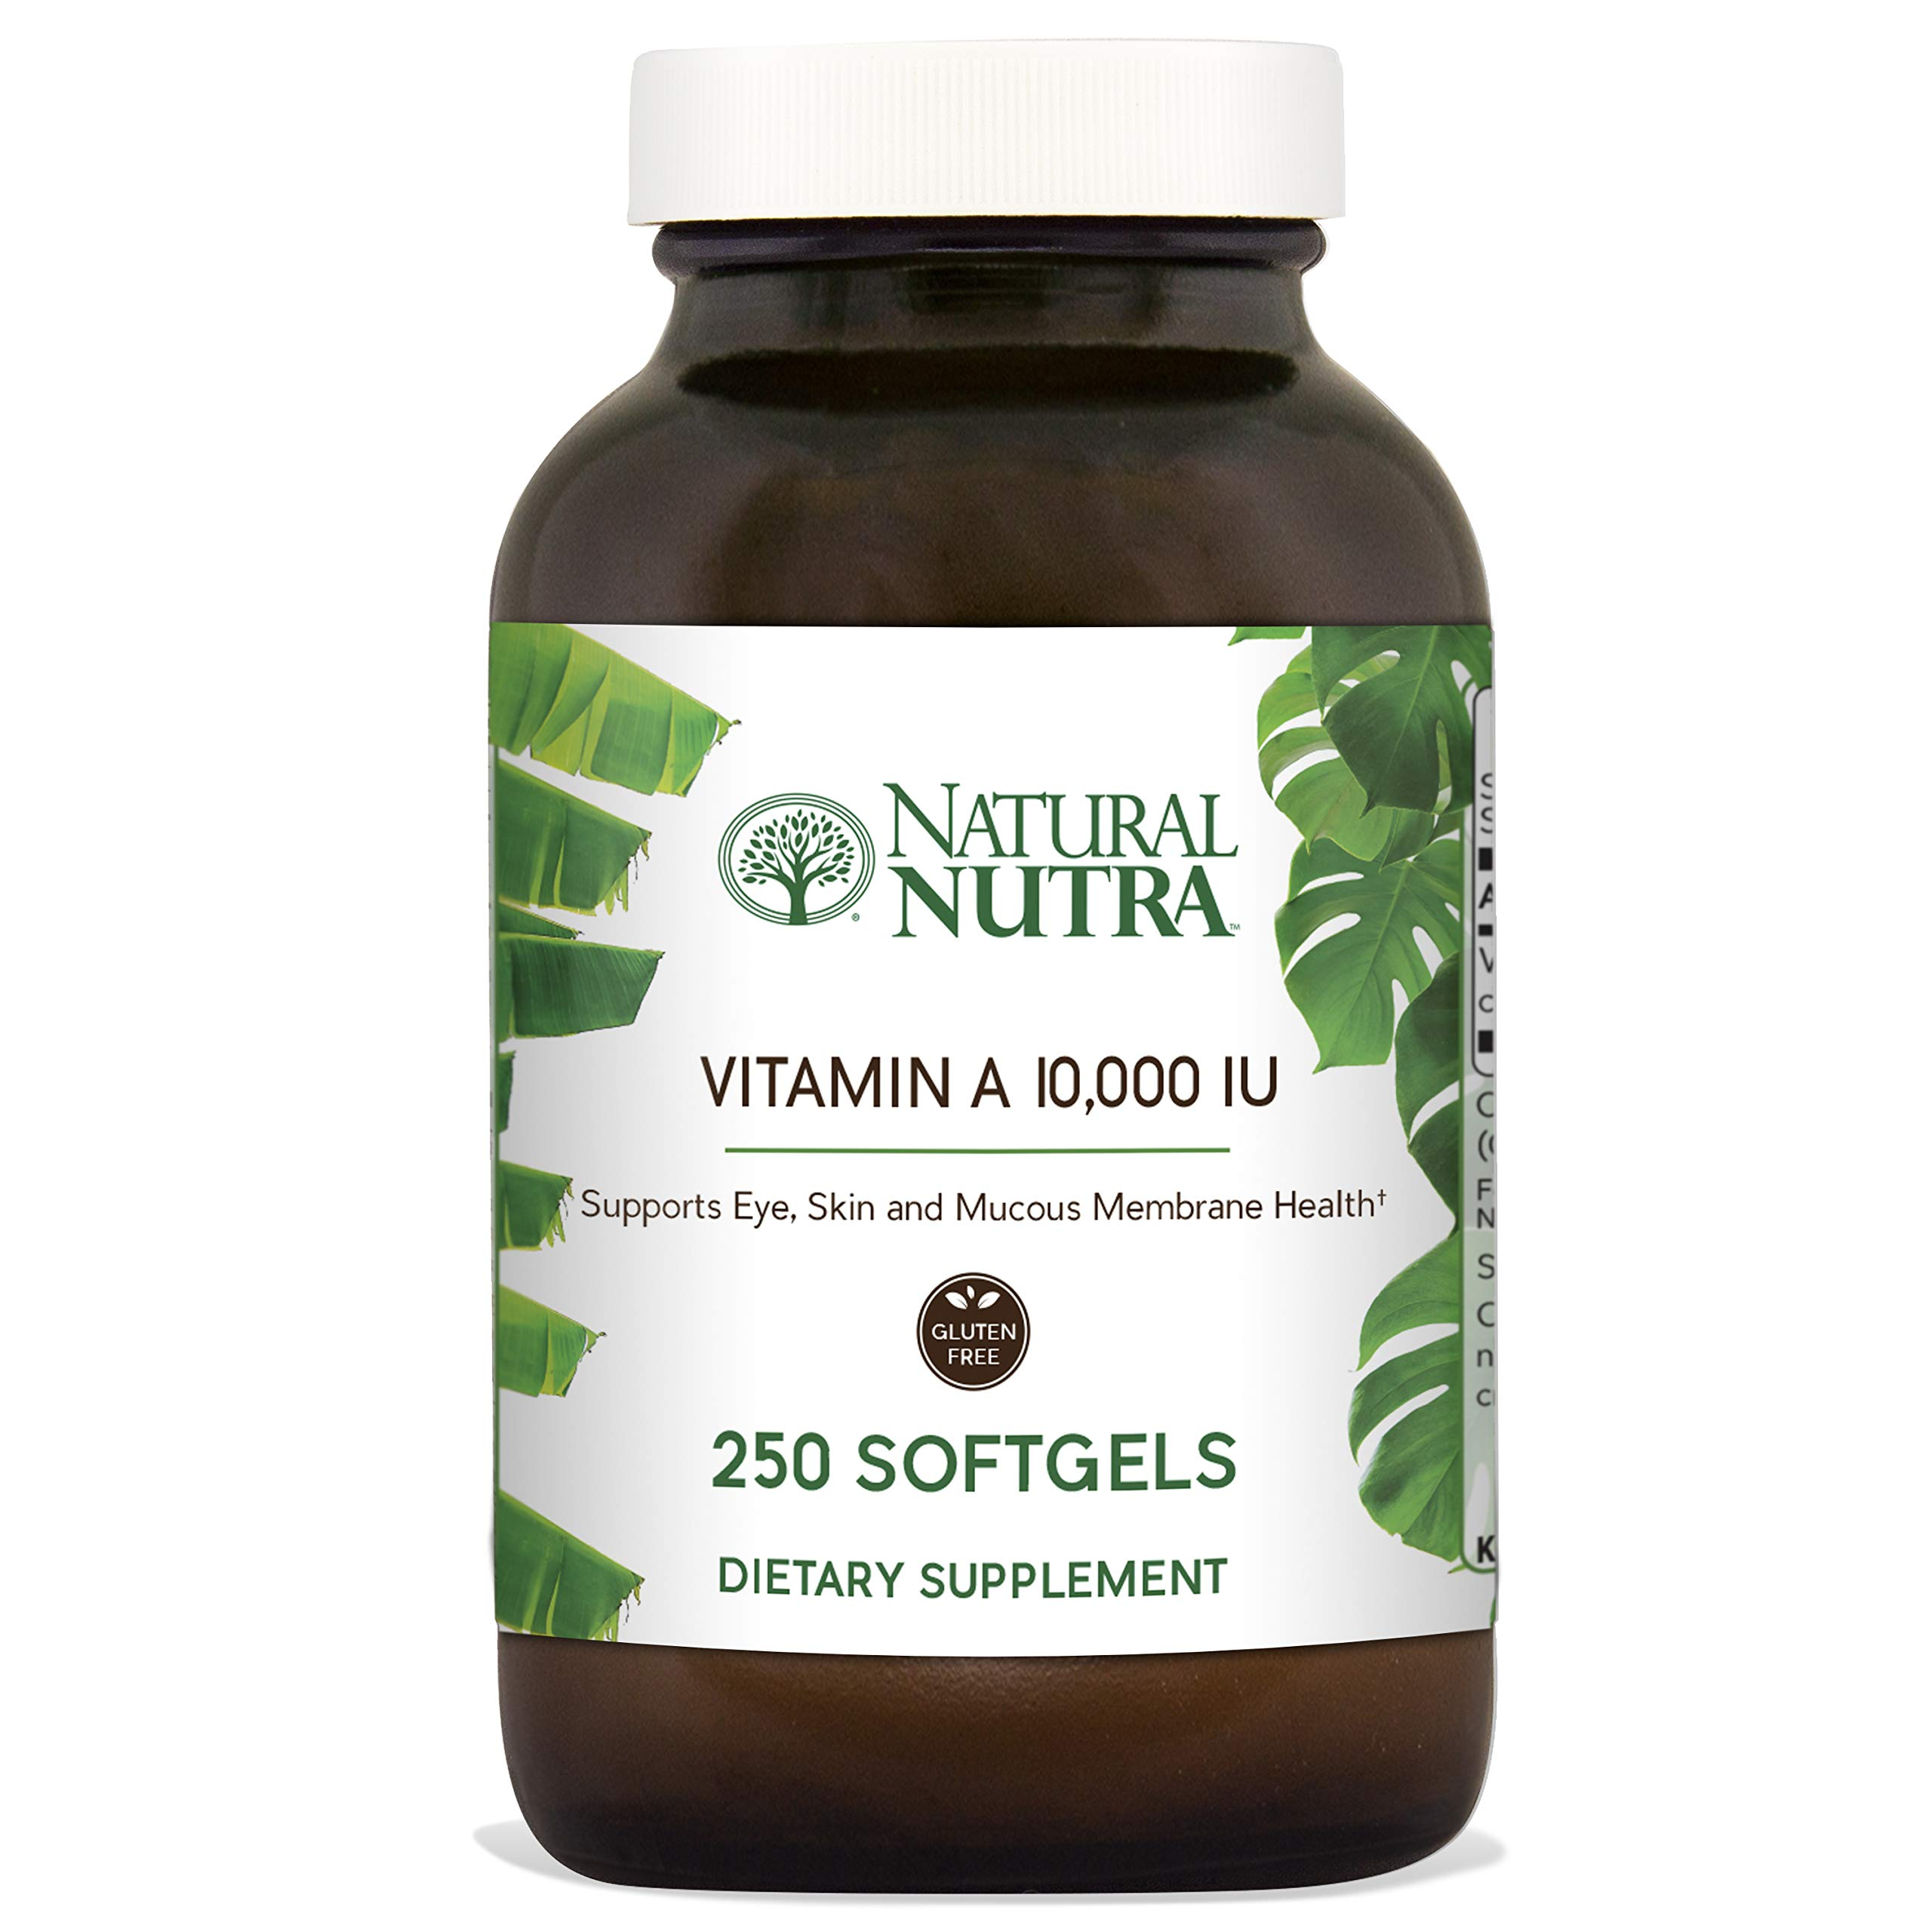 Natural Nutra Vitamin A Dietary Supplement from Cod Liver Oil, 10,000 IU, 250 Softgels